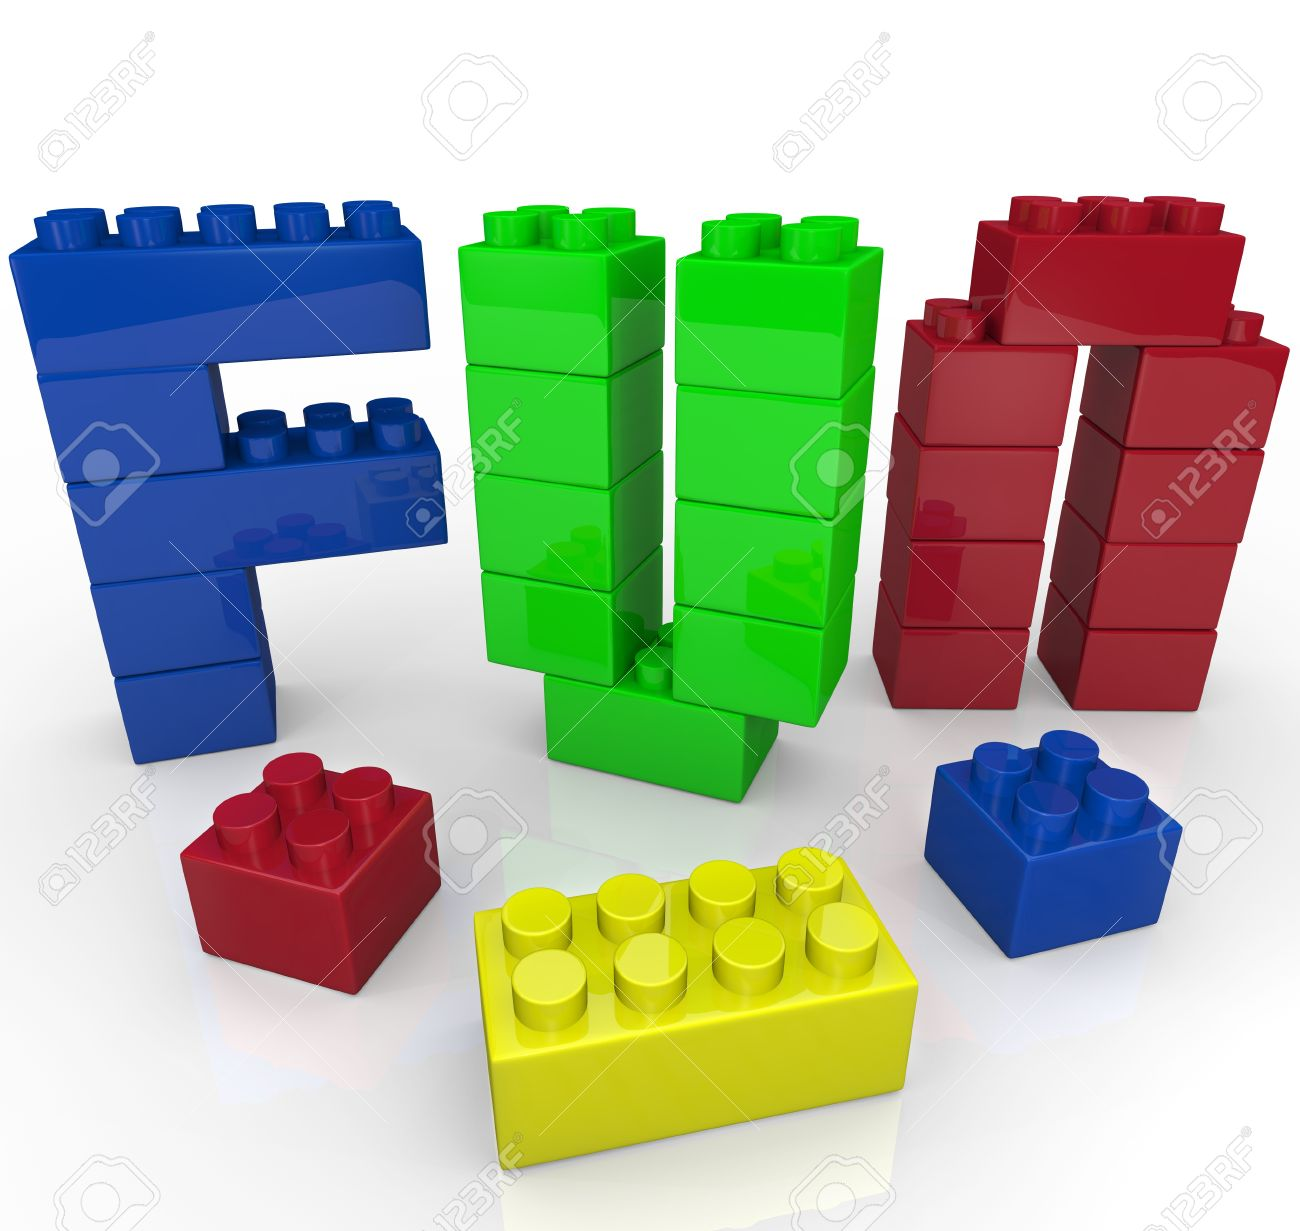 The word Fun built with plastic toy building blocks in several colors representing the power of imaginative and creative play Stock Photo - 10085898